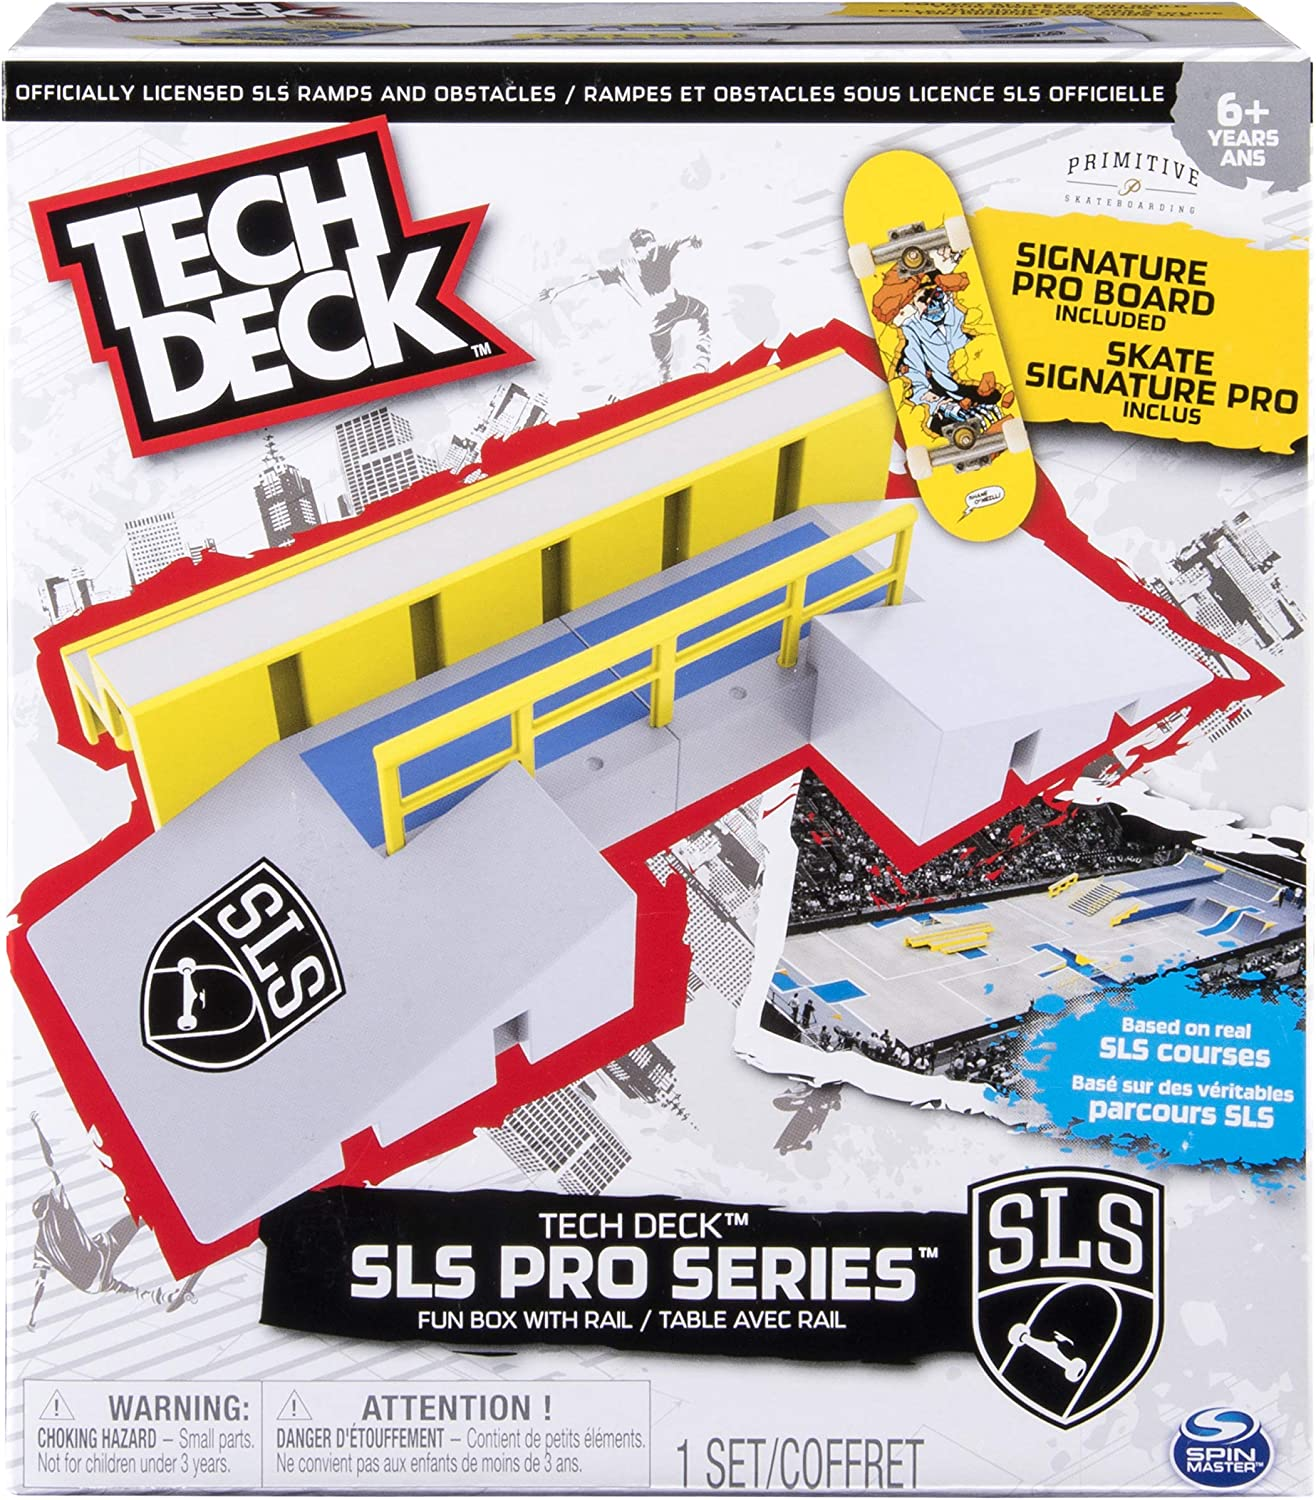 Top 10 Best Tech Decks and Ramps (2020 Reviews & Buying Guide) 7